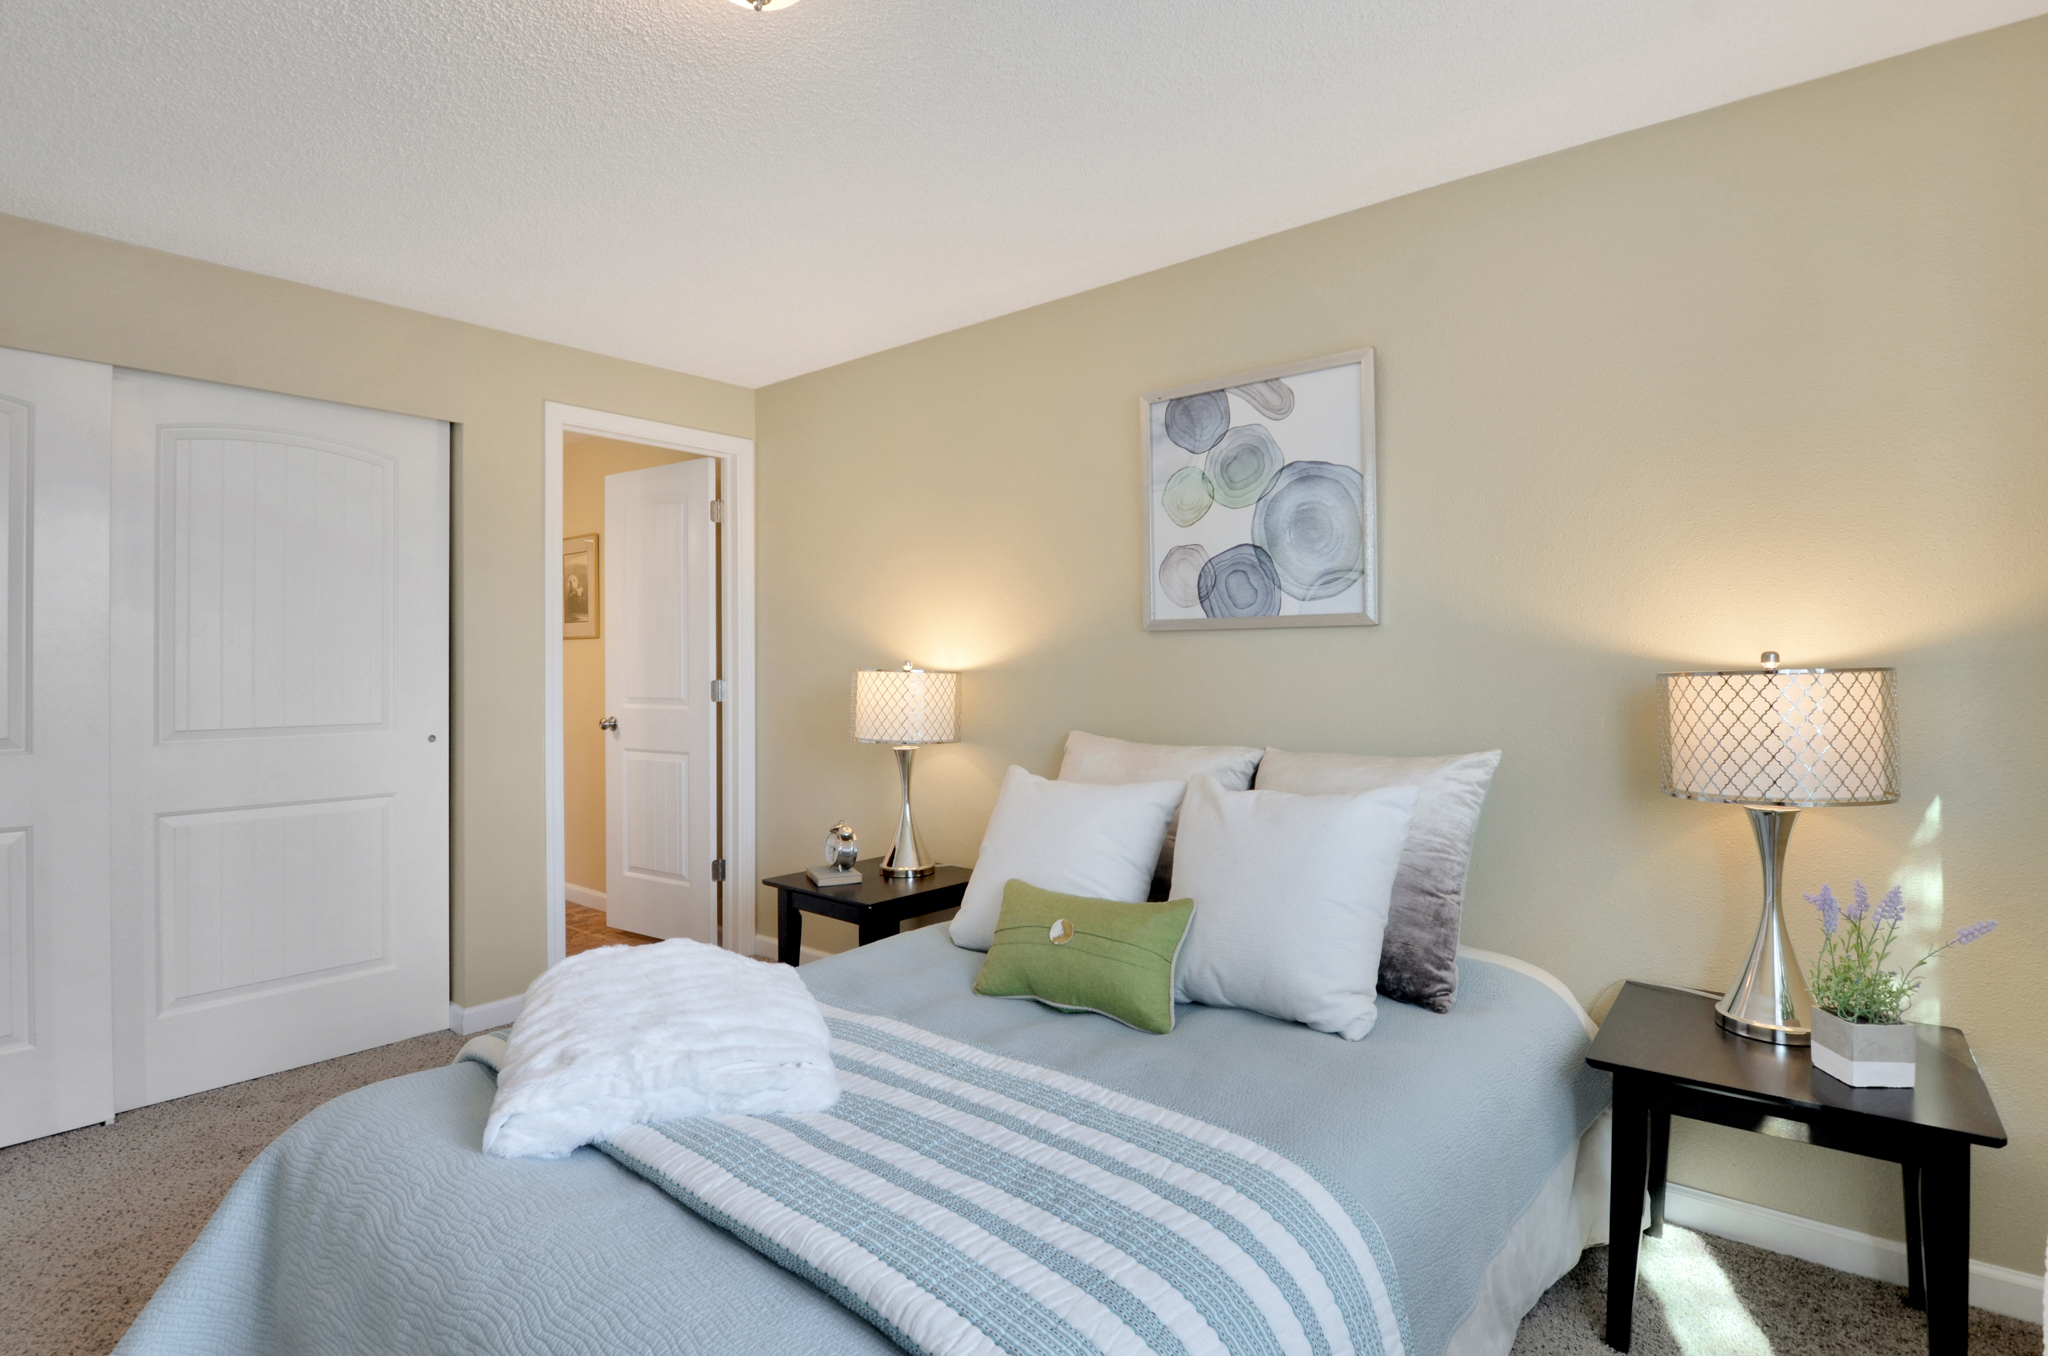 This en suite bedroom features a private 3/4 bath, large sliding closet doors, and the freshly painted walls found throughout the home.